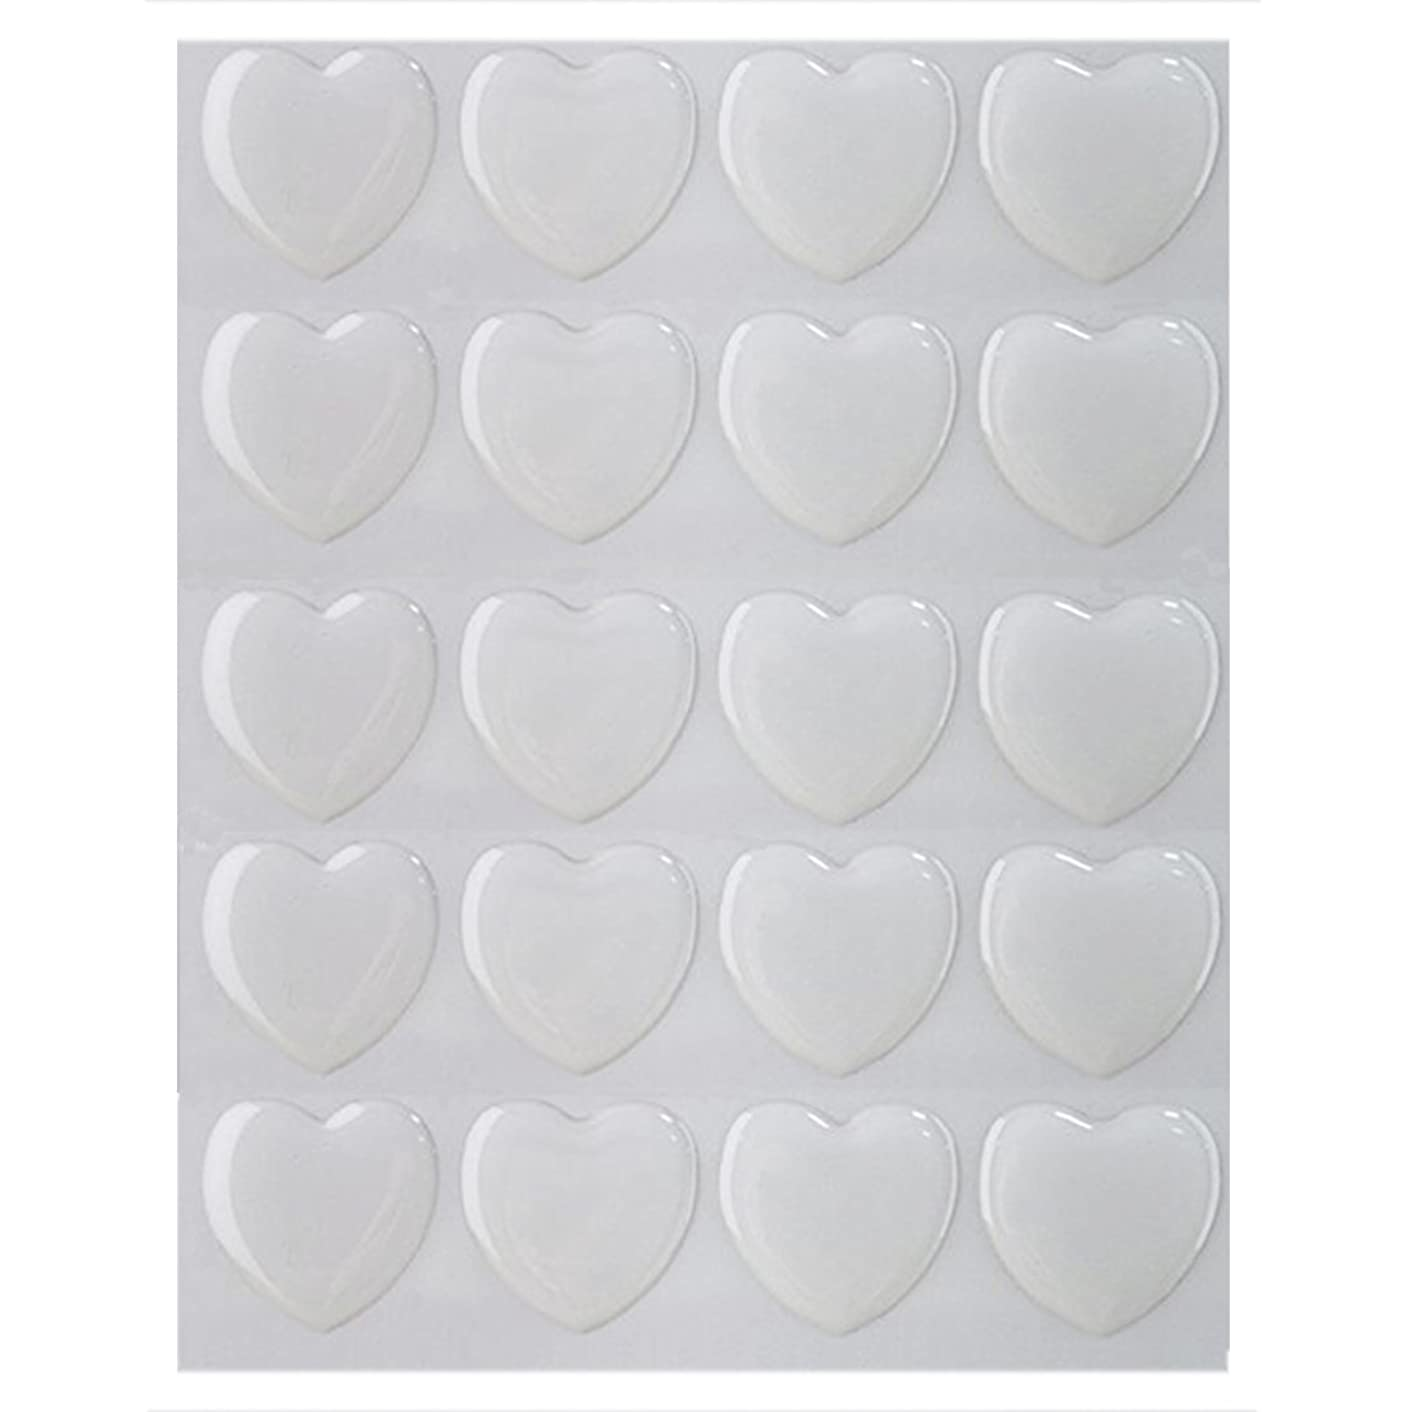 IGOGO 100 PCS Clear Heart Epoxy Stickers Adhesive Seal for Bottle Cap and Pendants 1-Inch